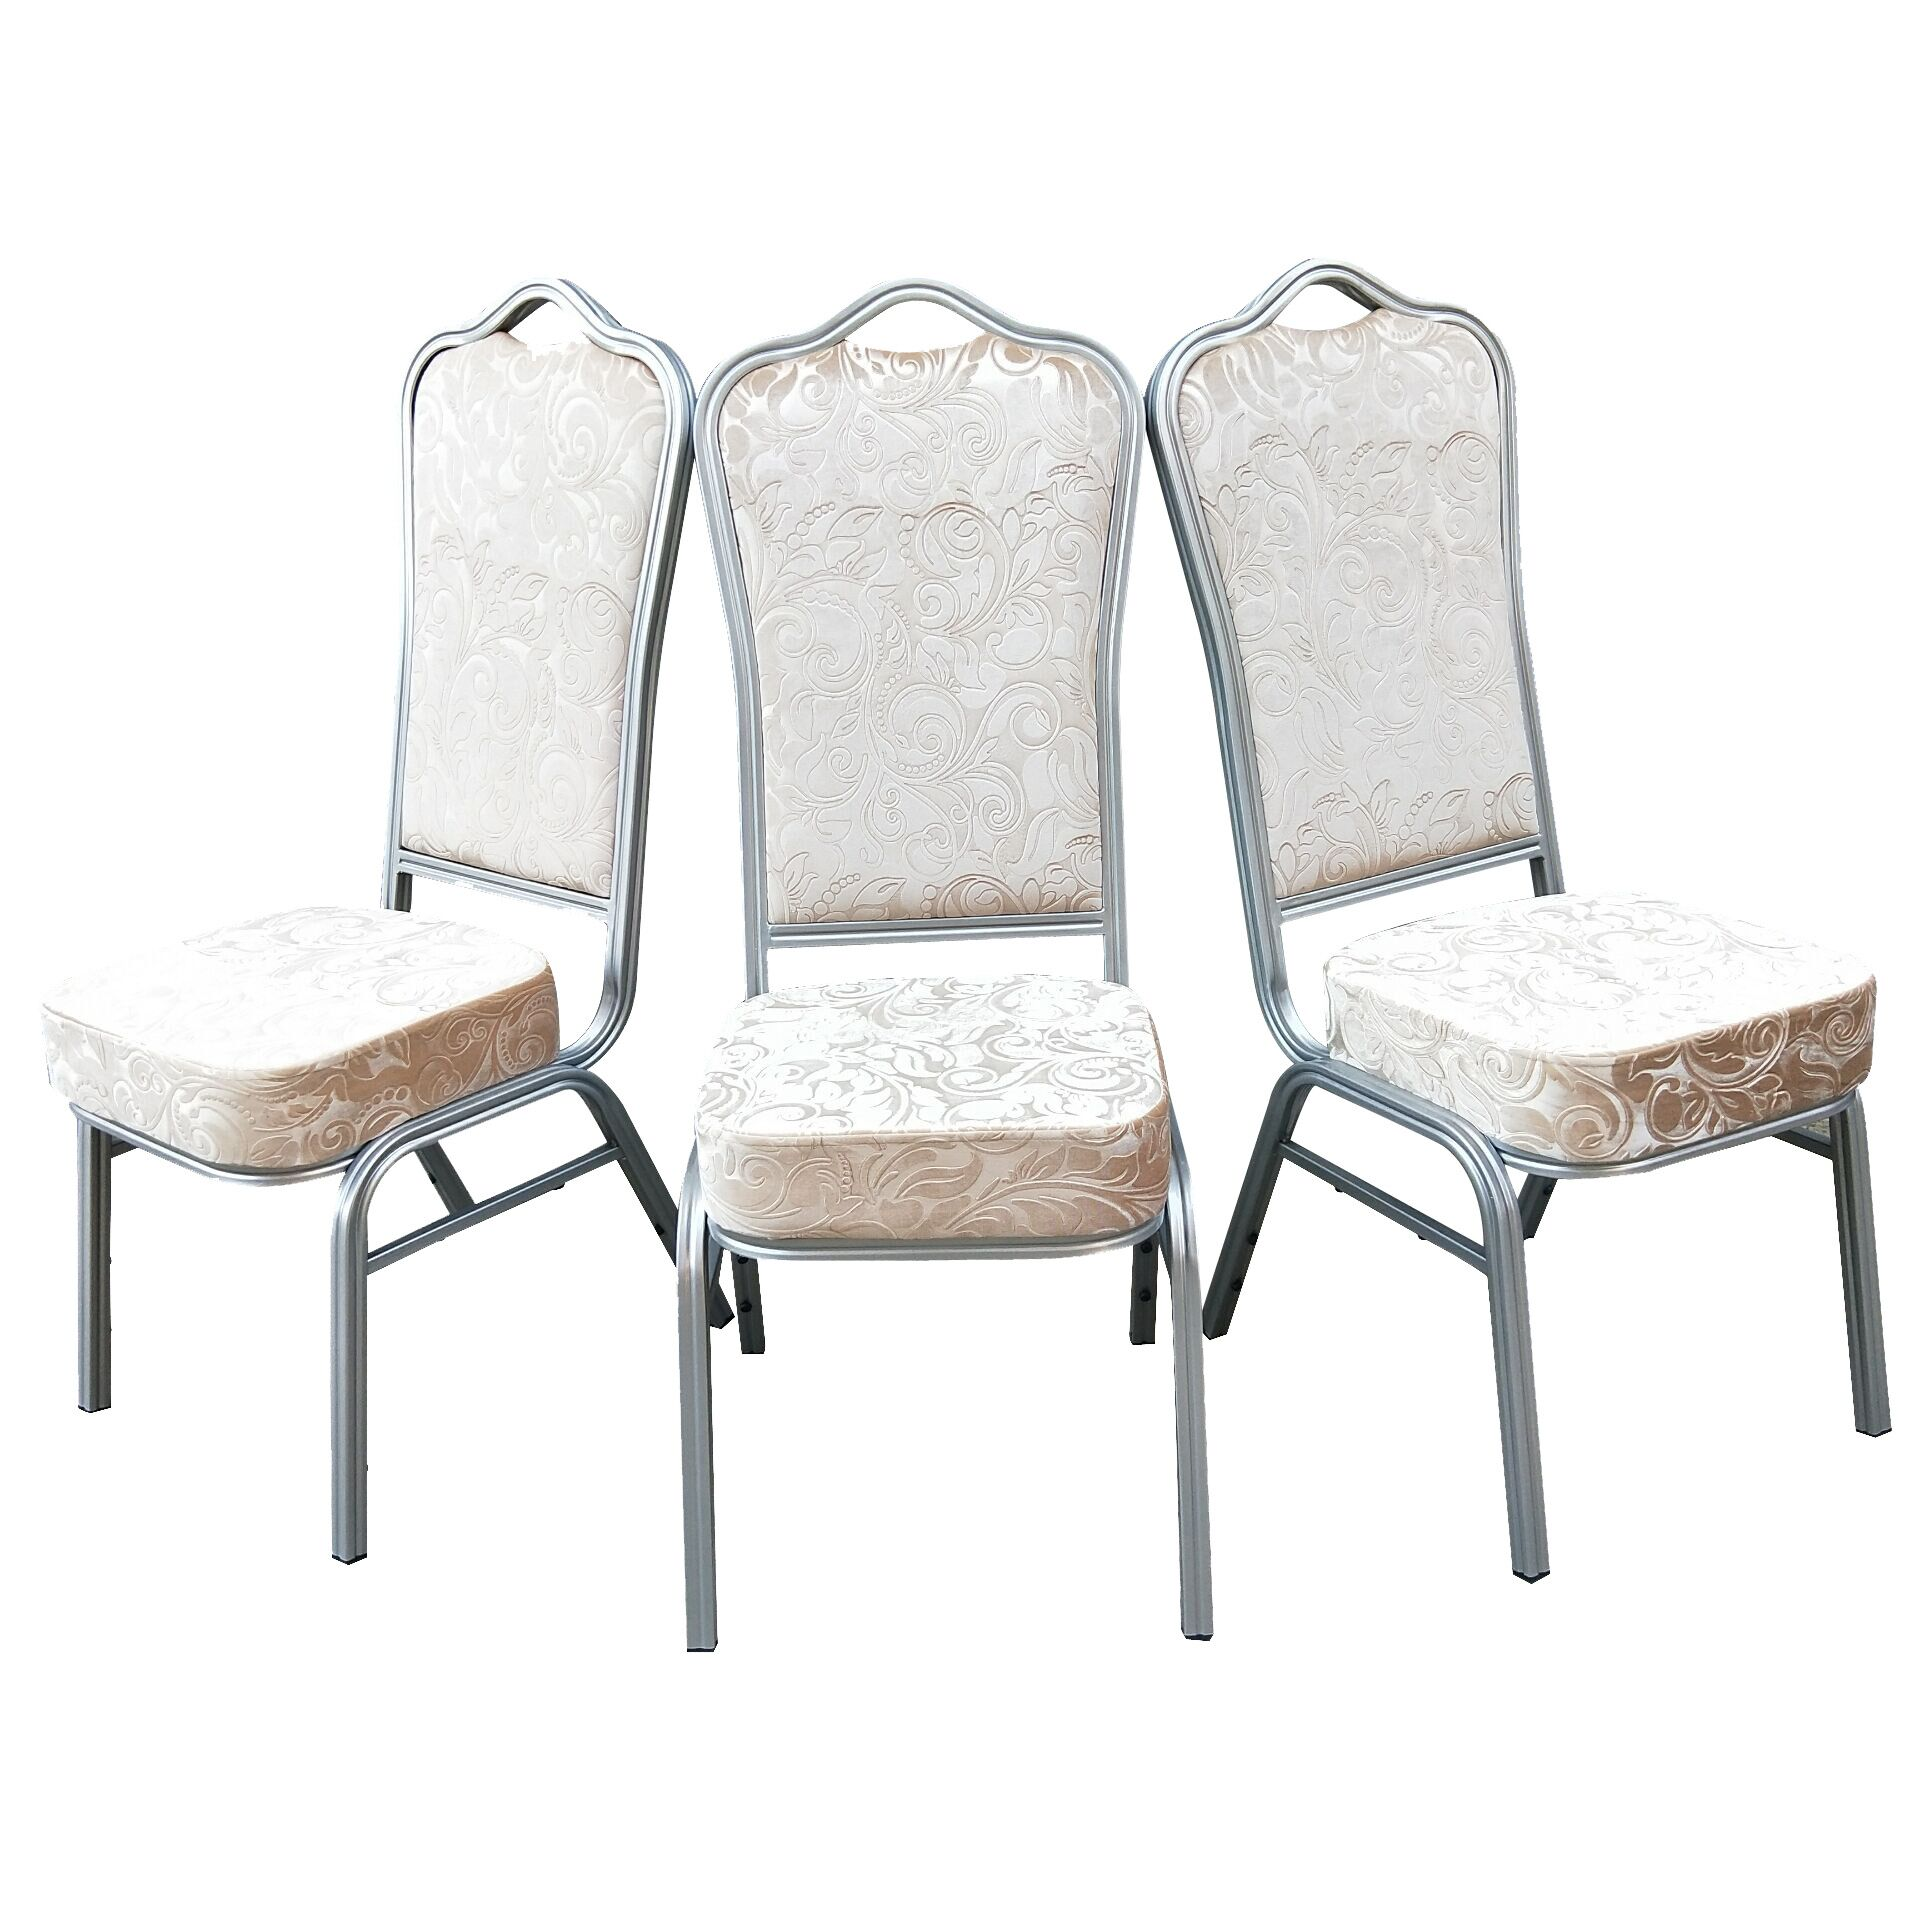 High Performance Church Chairs For Sale In Florida -